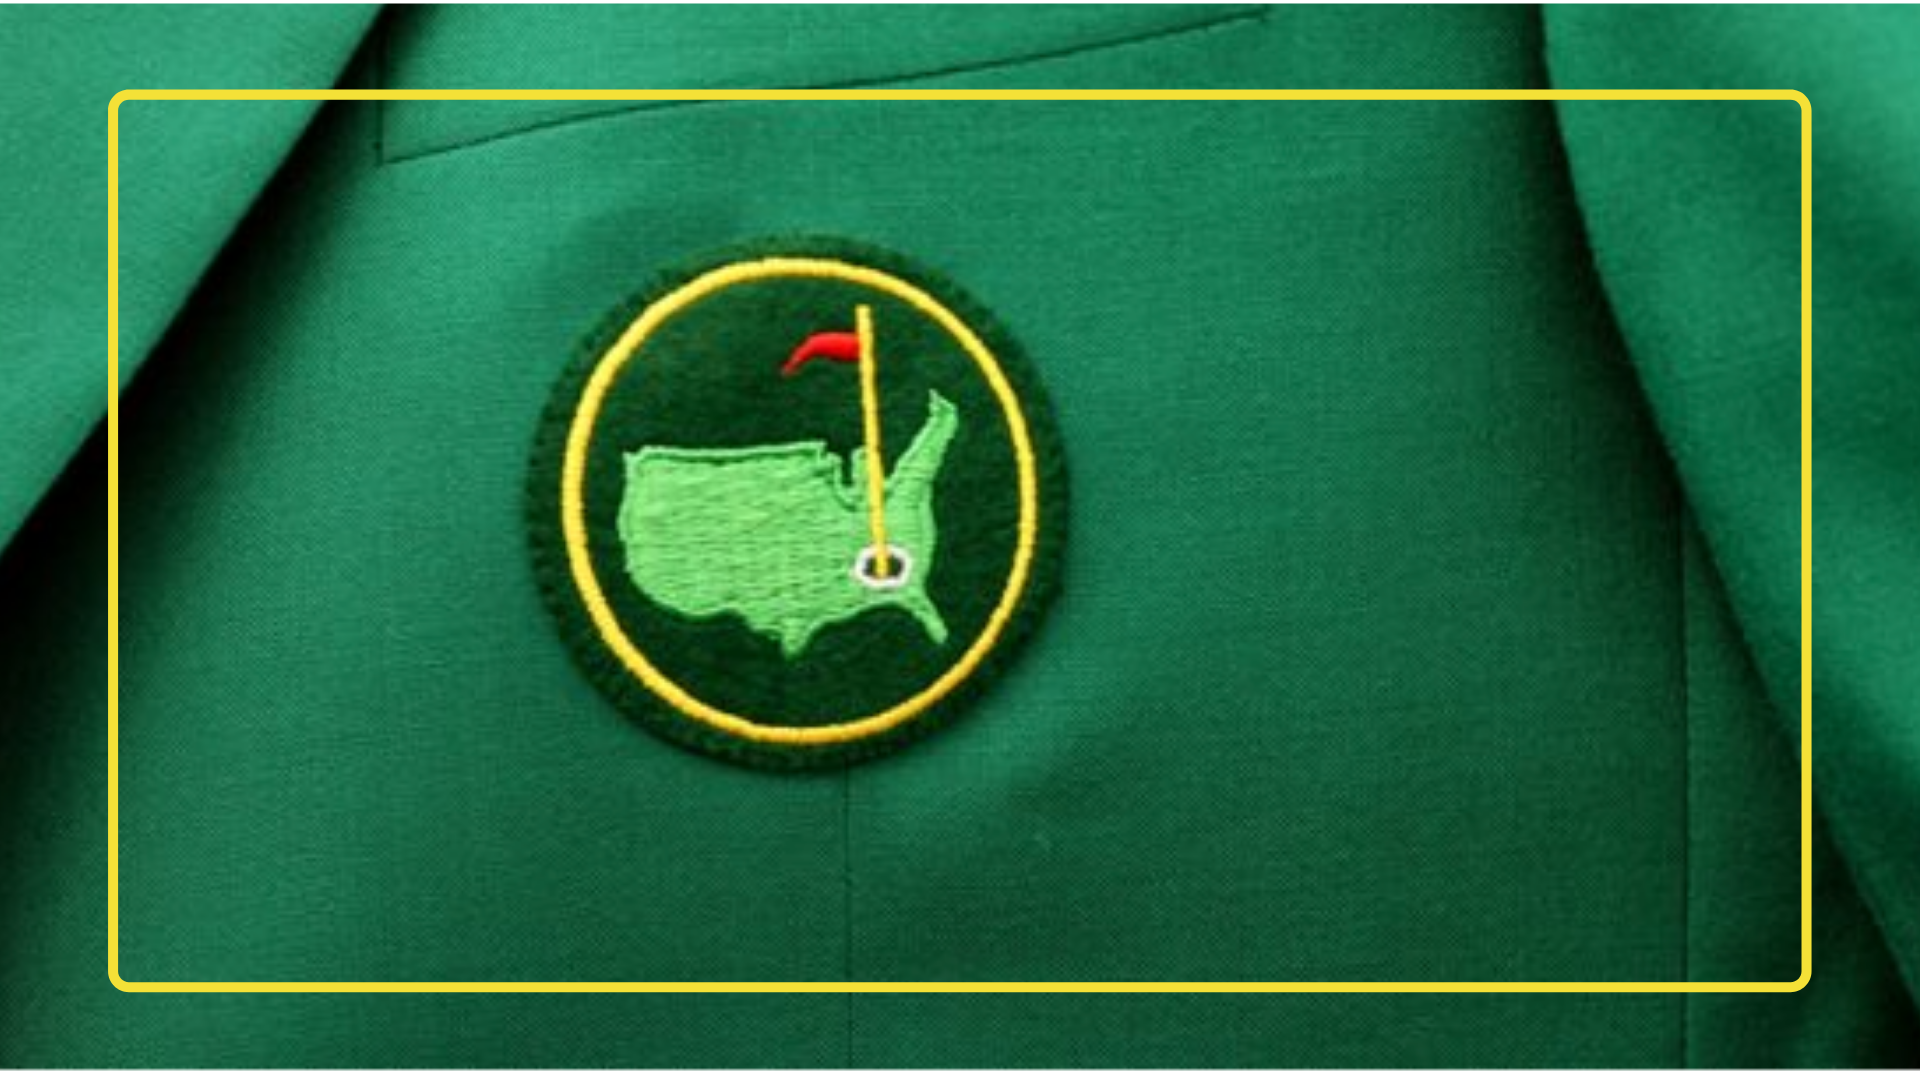 Lowest Score in Masters History